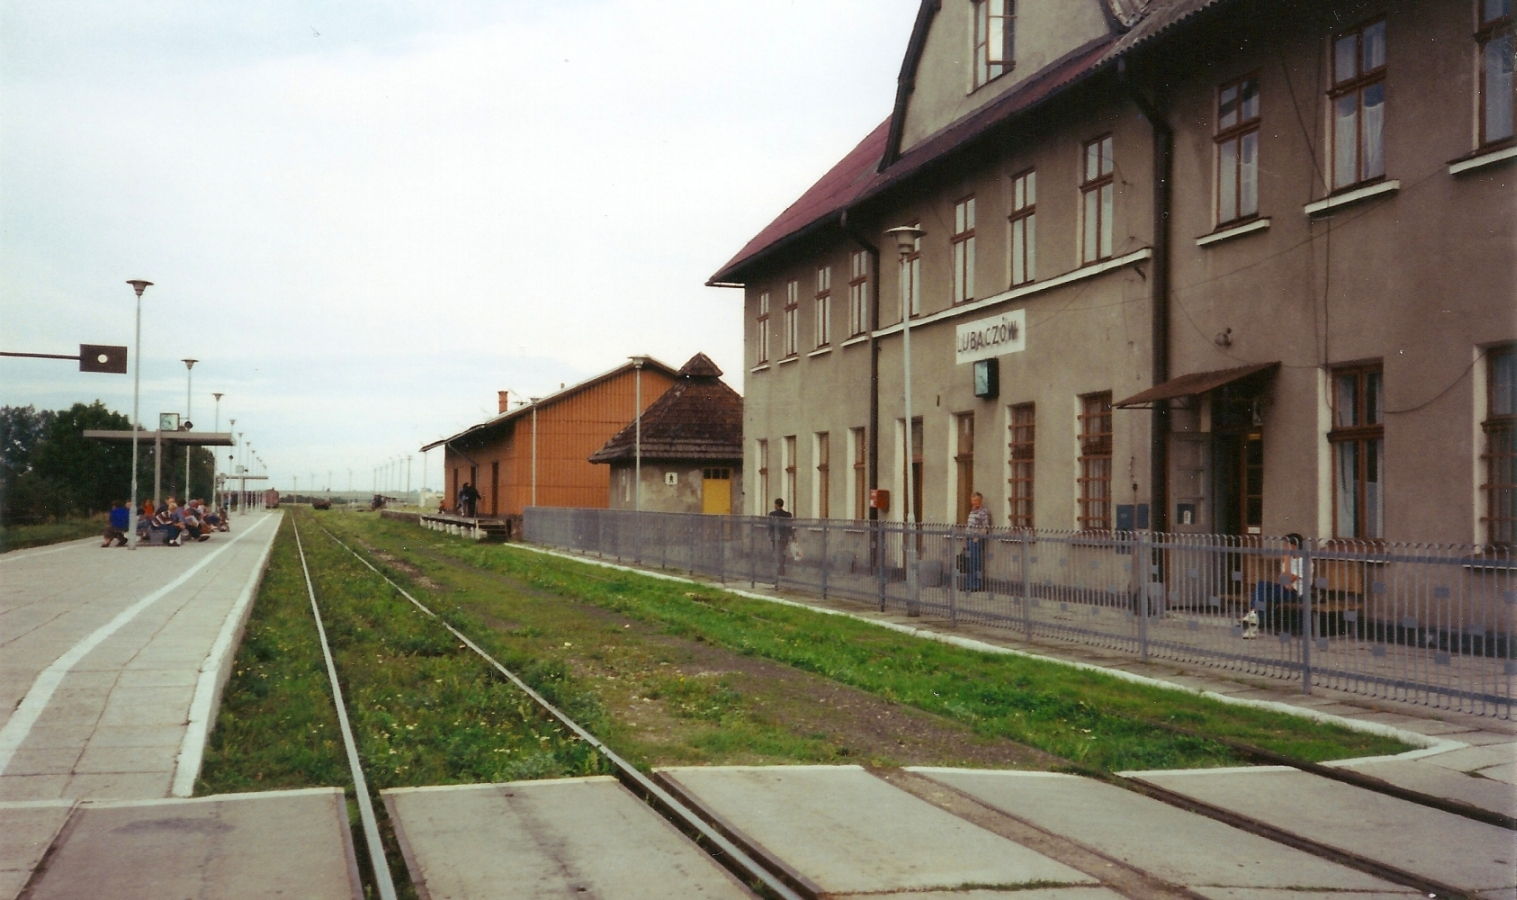 The outside  of Lubaczów railway station. Kazik stands under the station sign, small with the whole image.